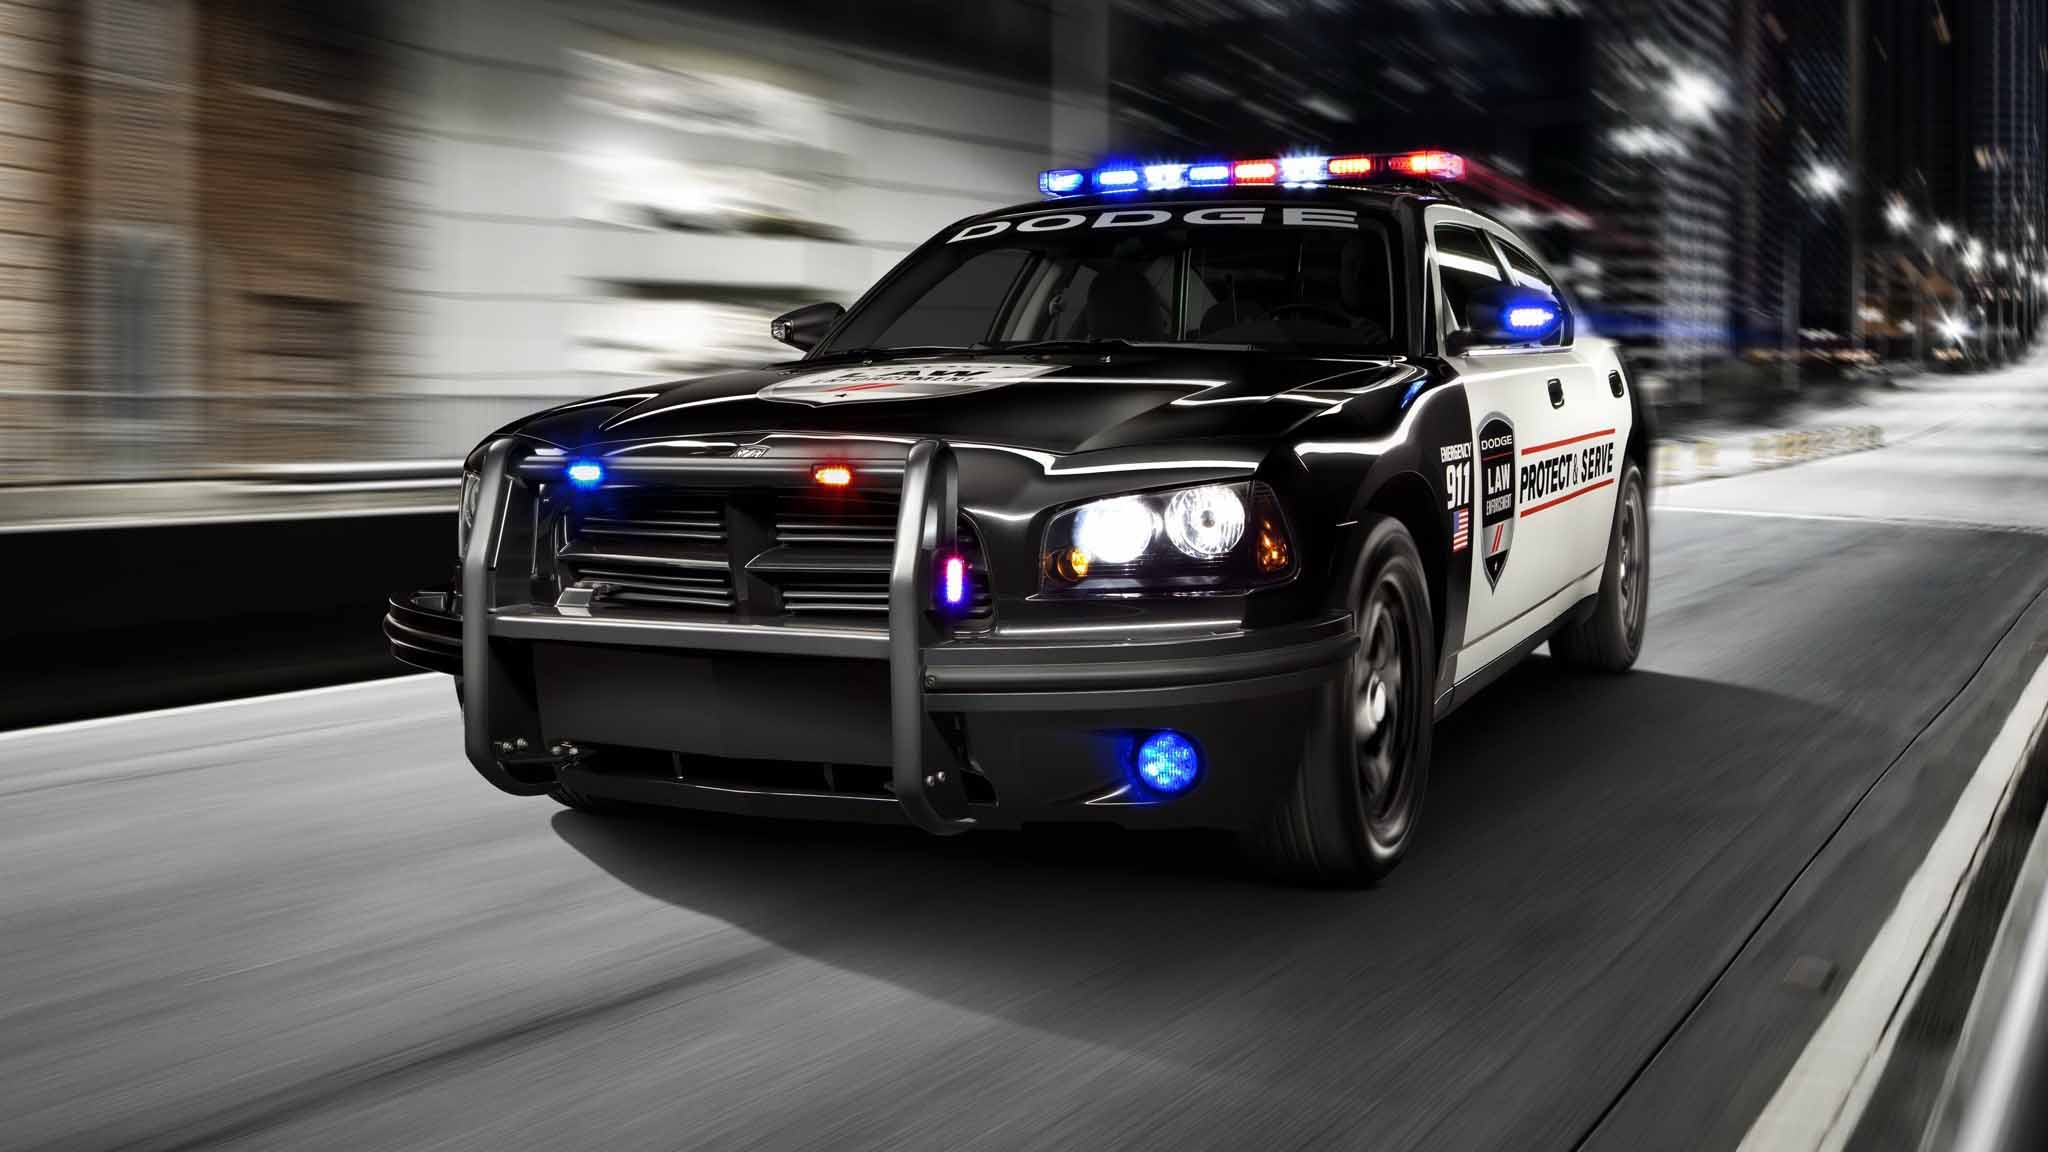 American Muscle Car Mobile Wallpaper Hd Full Hd Police Wallpaper Full Hd Pictures